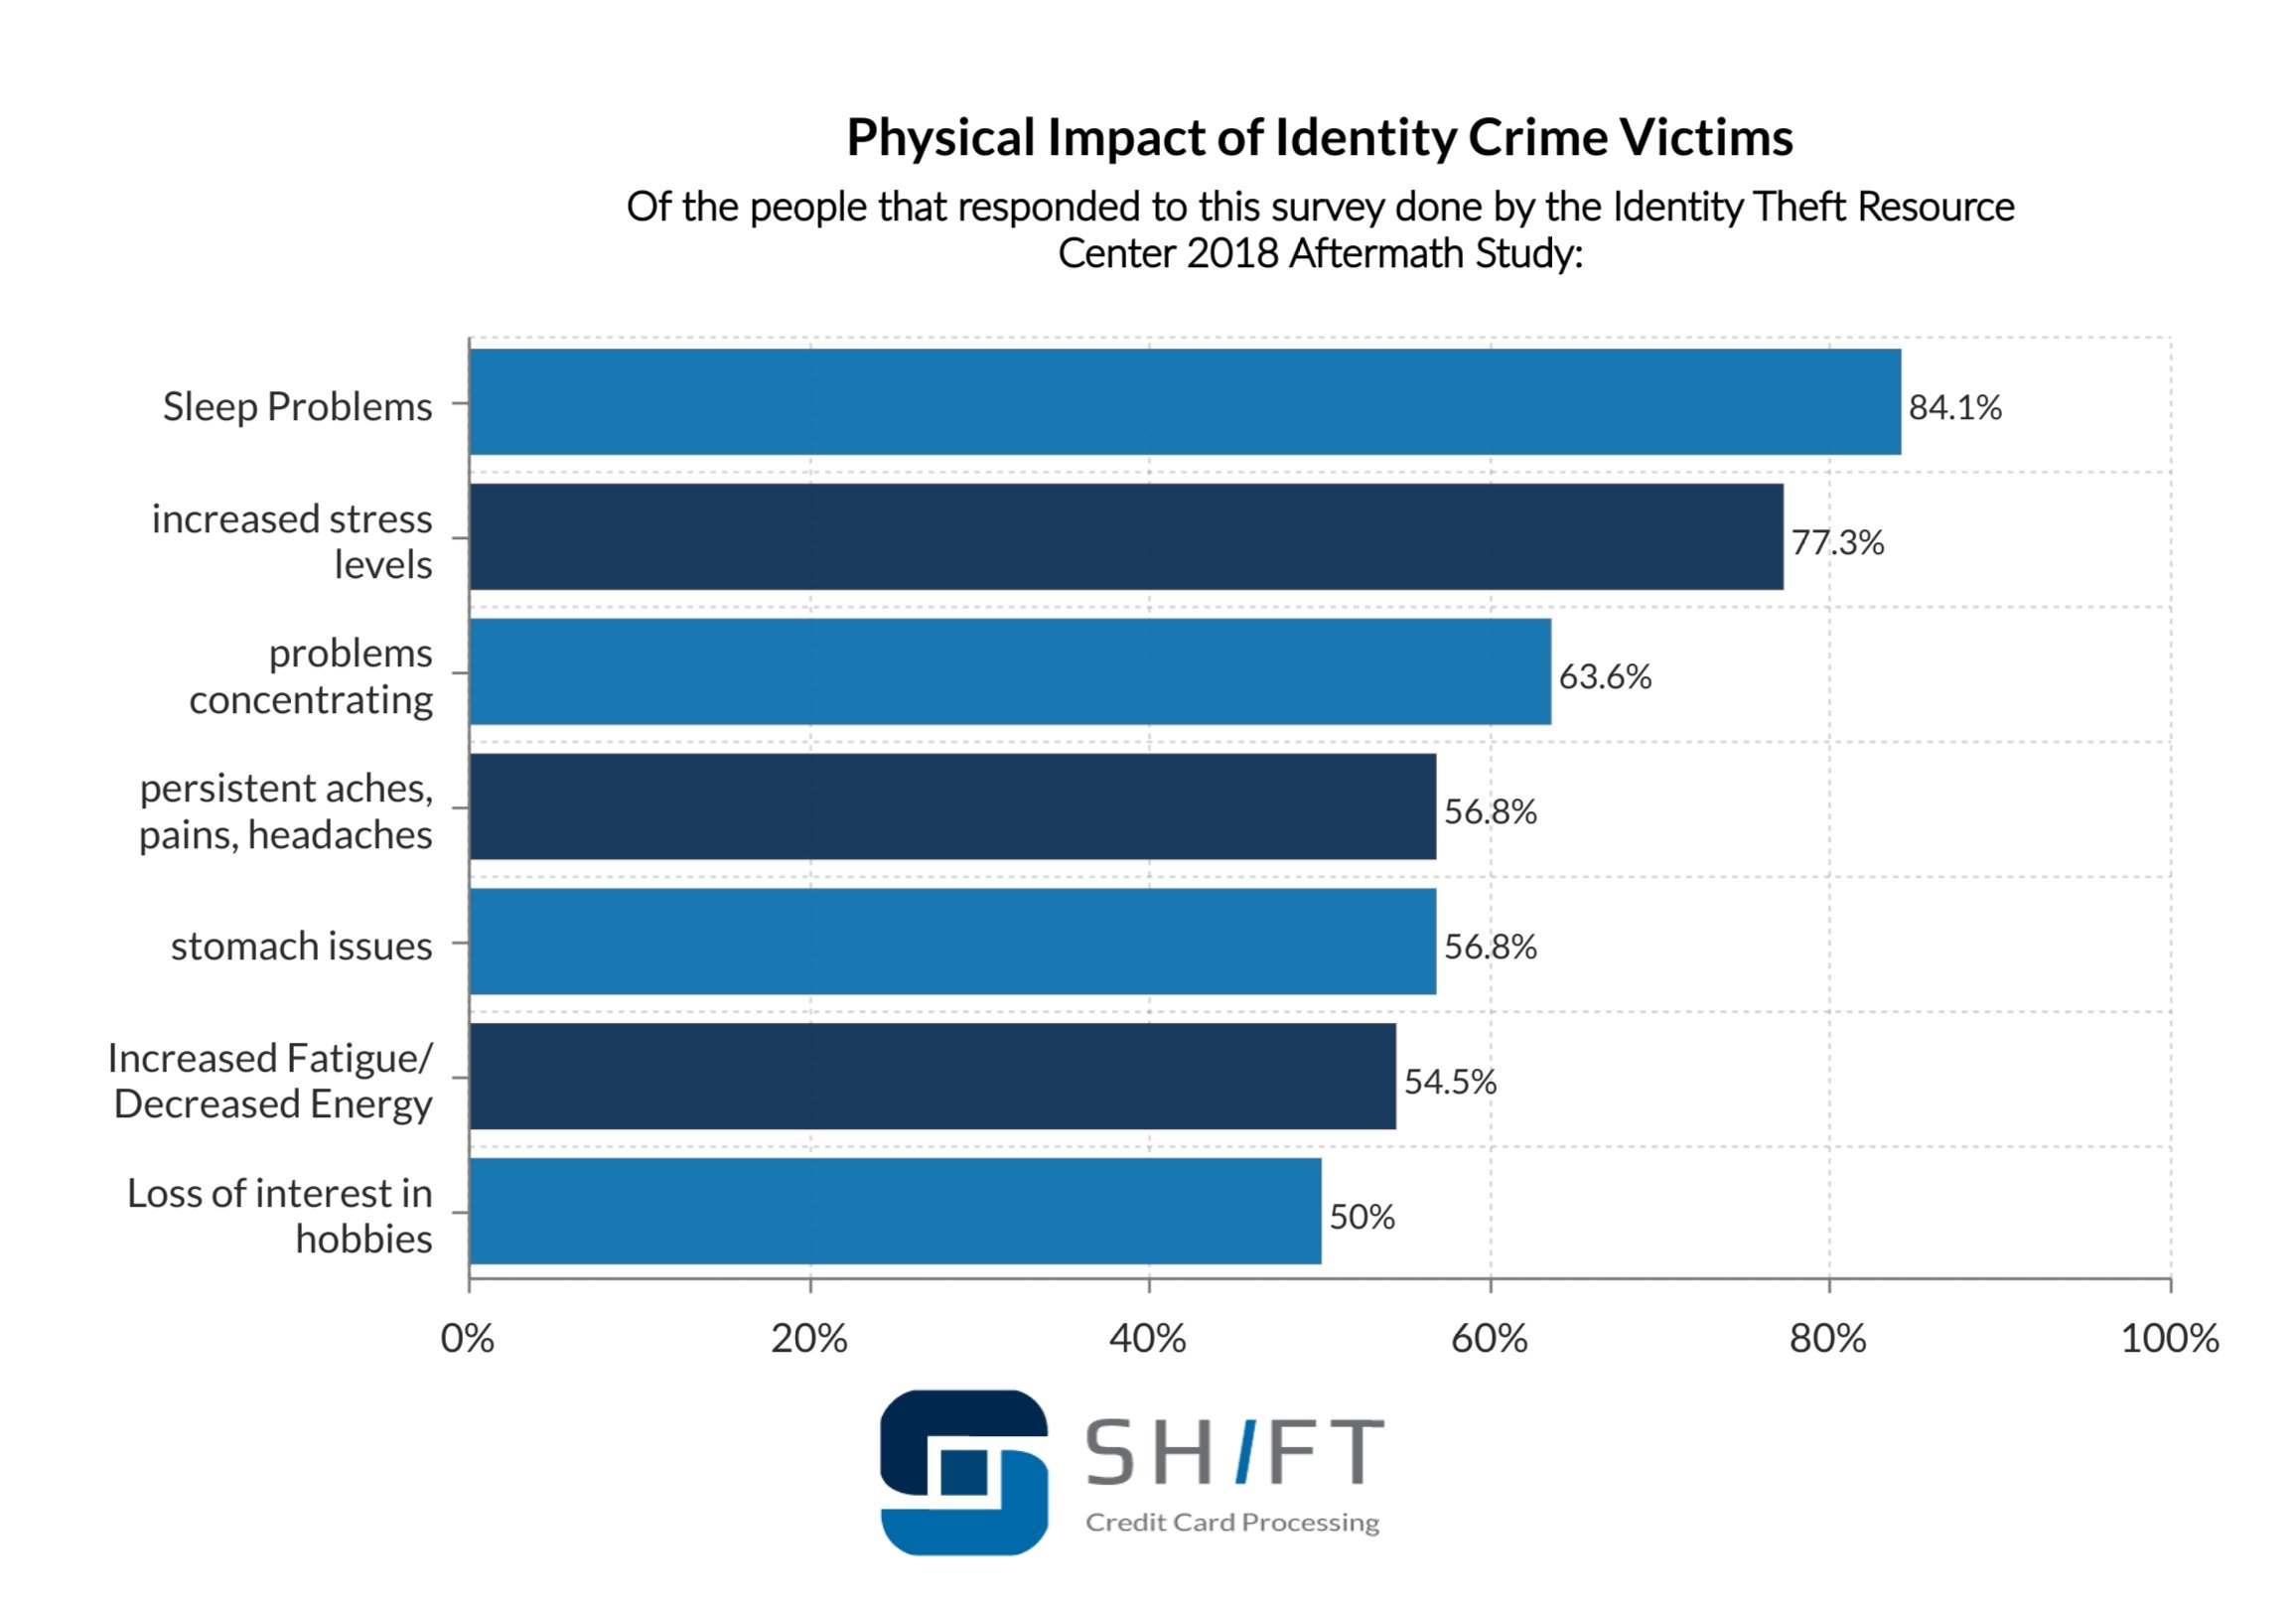 bar graph showing the physical impact of identity crime